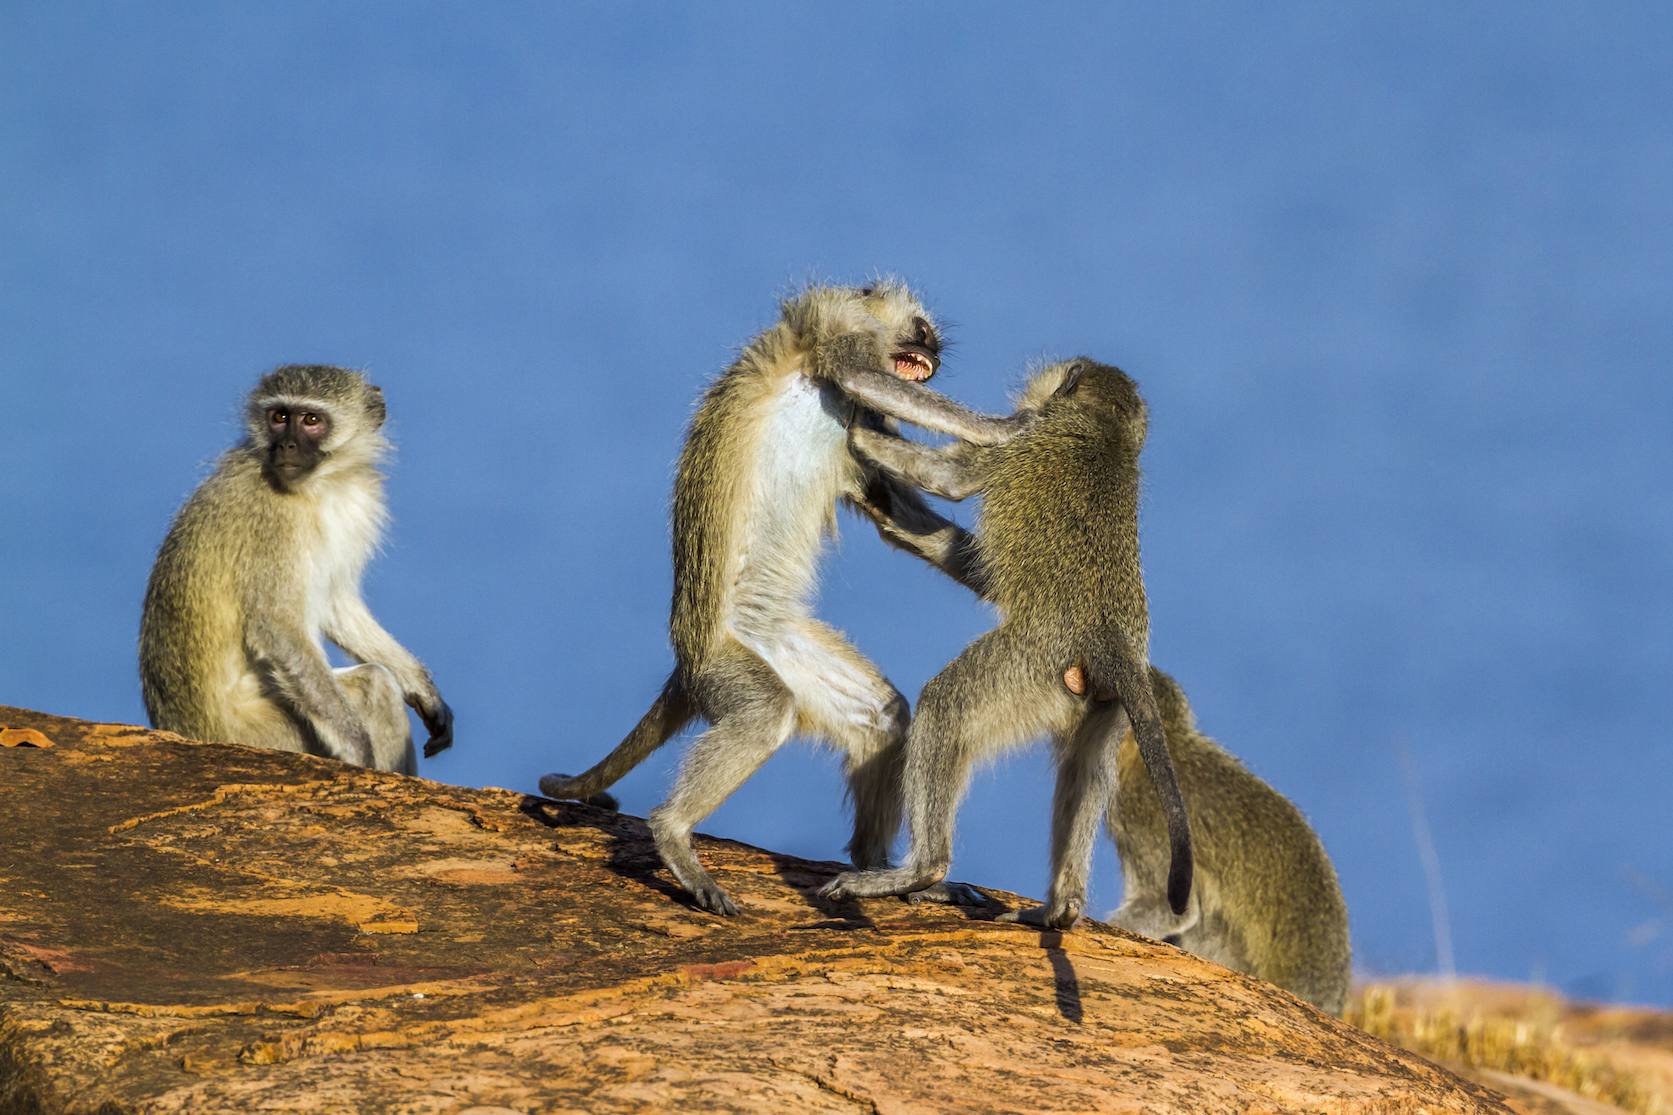 A team of anthropologists at the University of Zurich have found that male vervet monkeys attack members of their own group in order to prevent the escalation of fights. The females, on the other hand, encourage the males to fight.